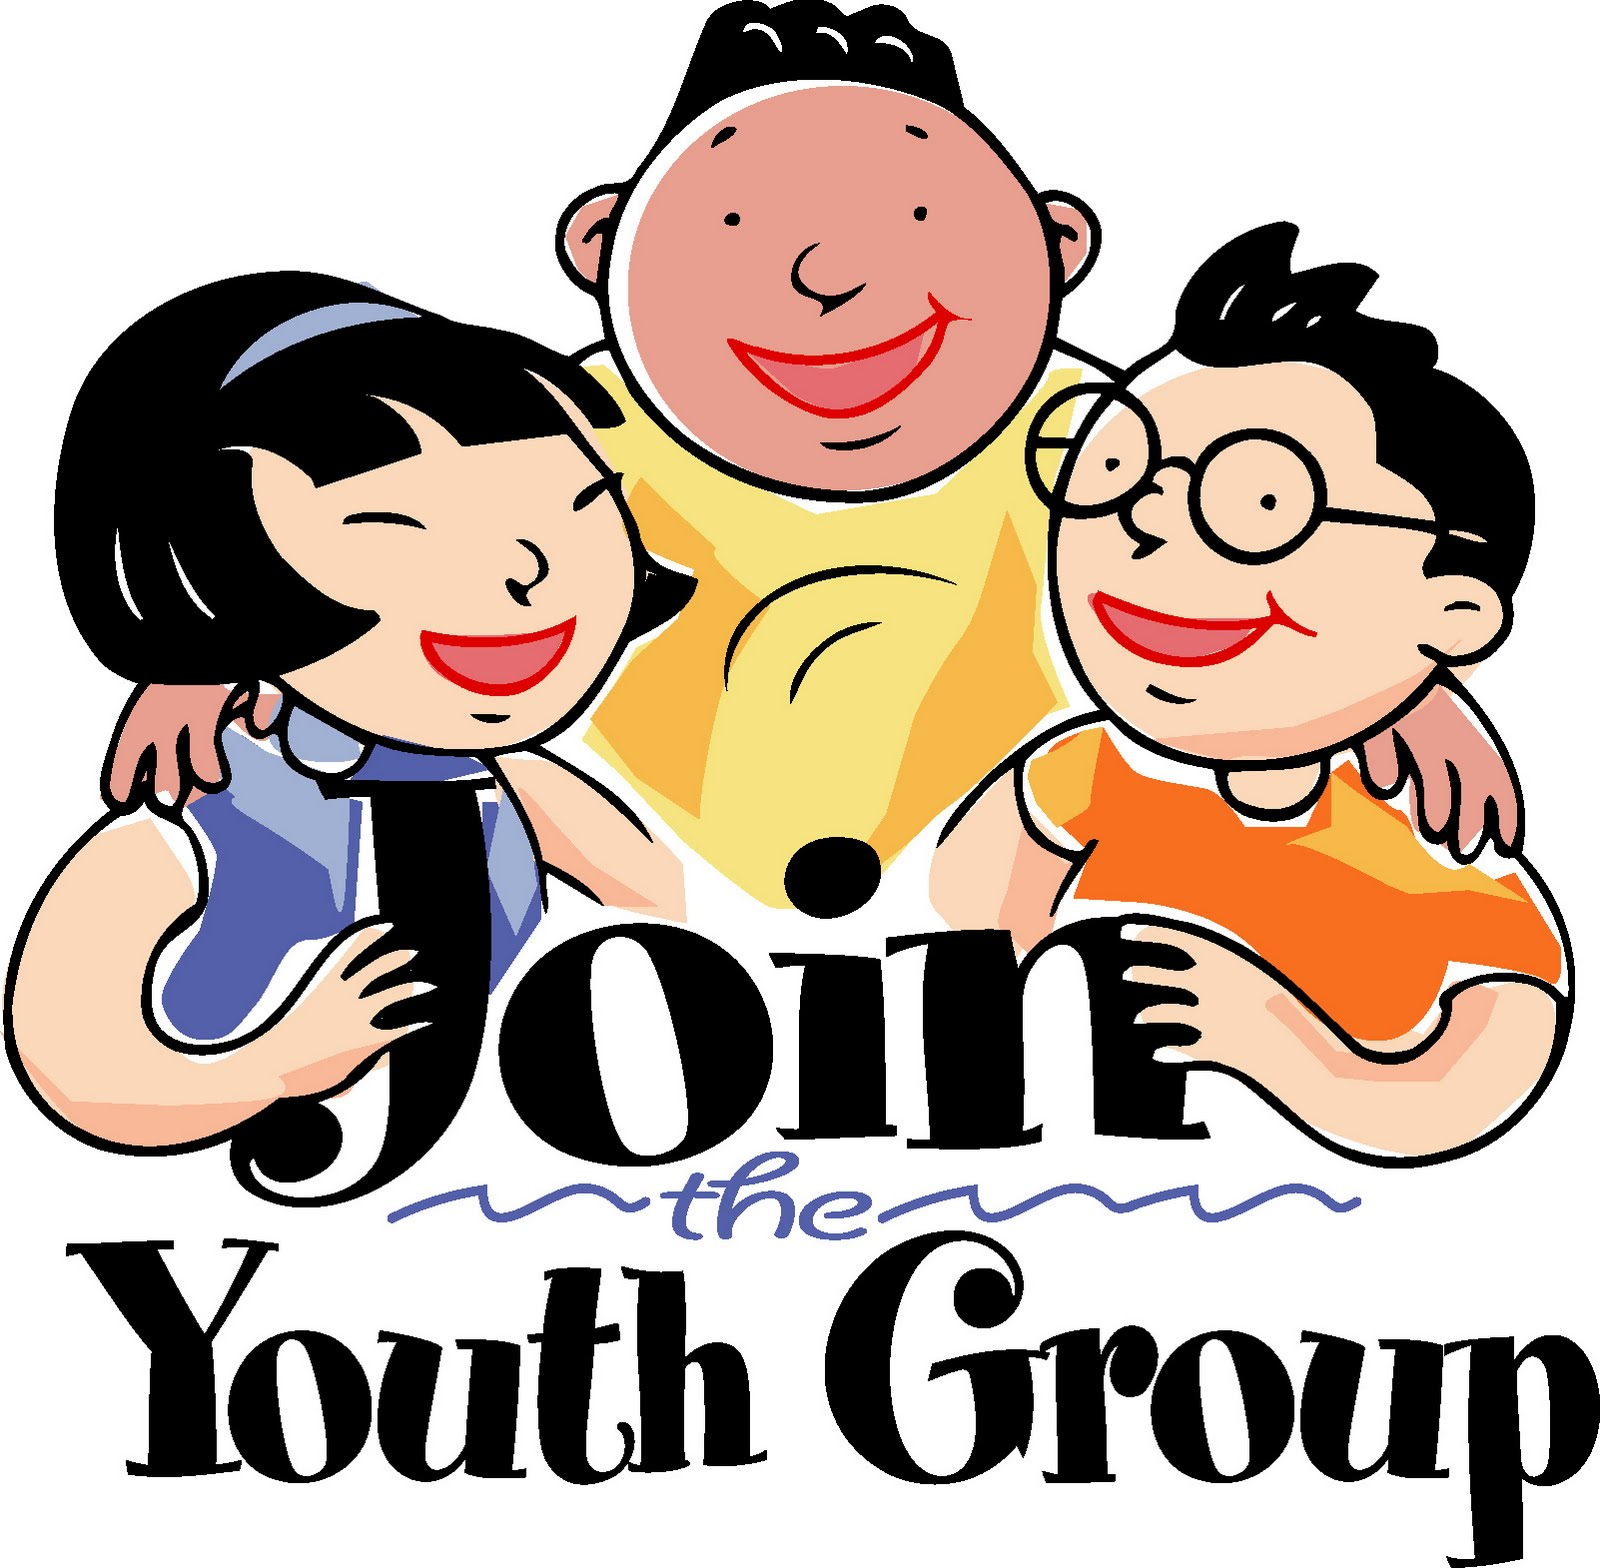 Church Youth Group Clip Art Picture